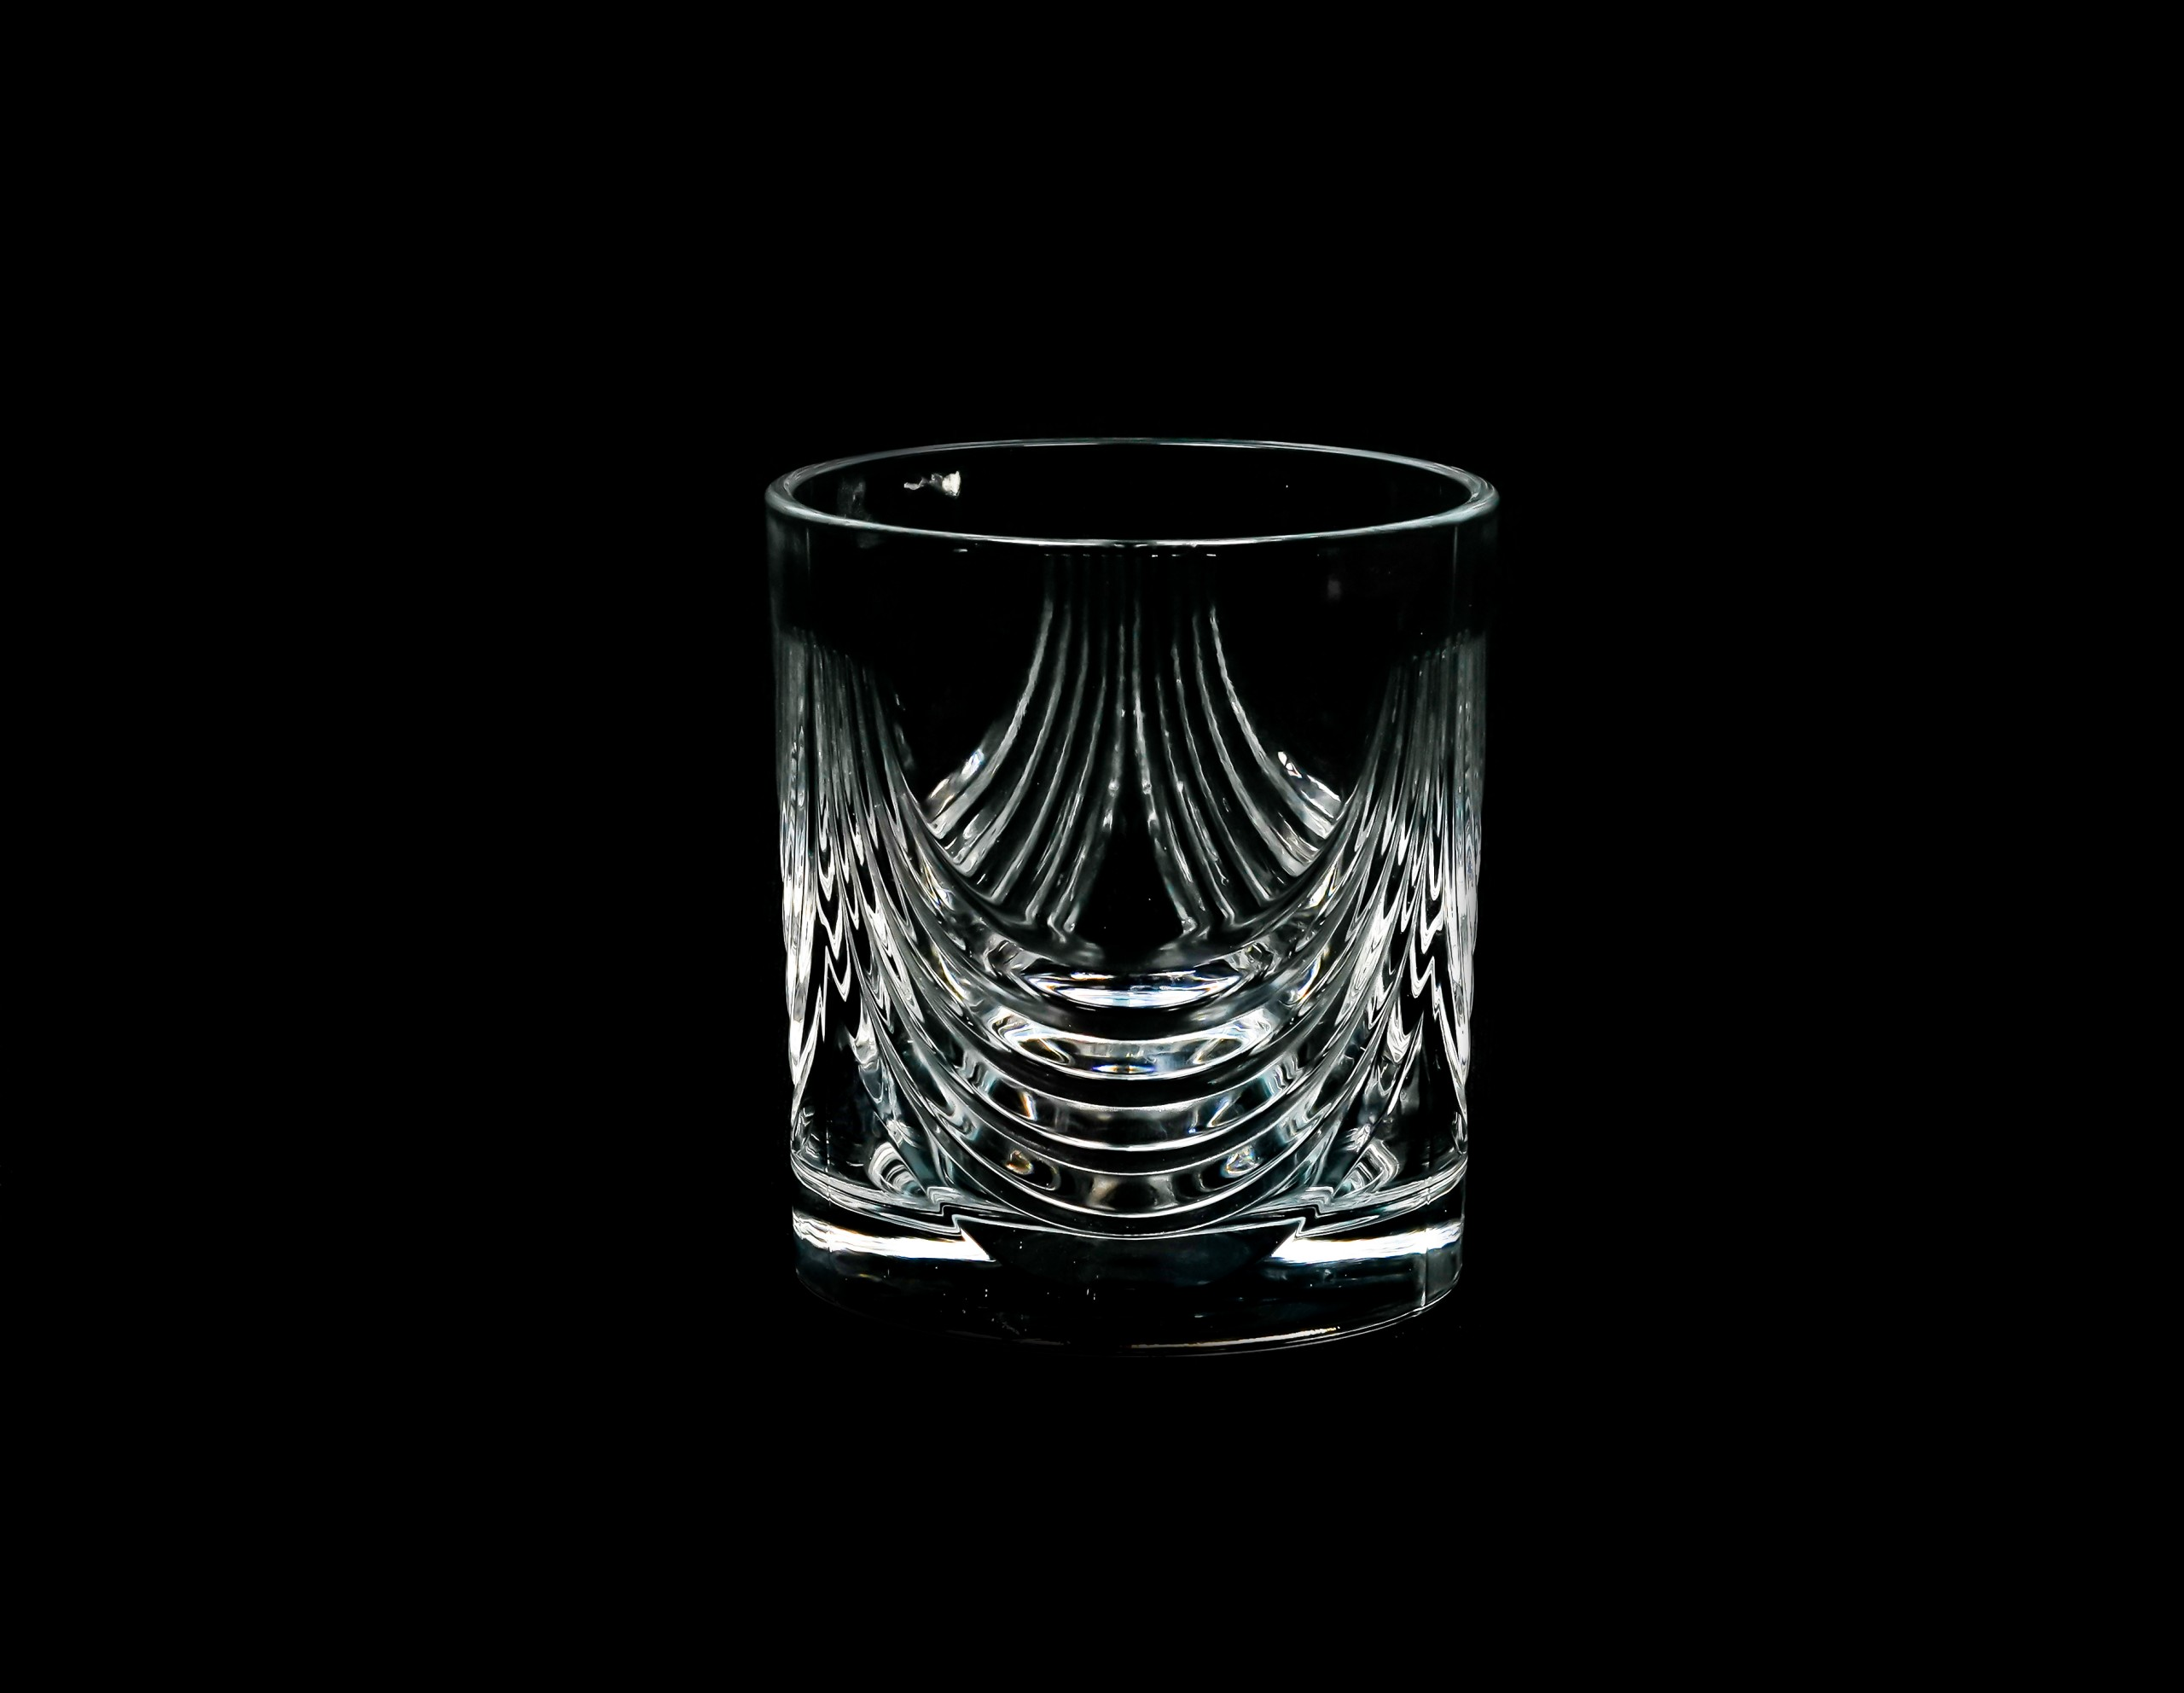 A Glass in Black Background